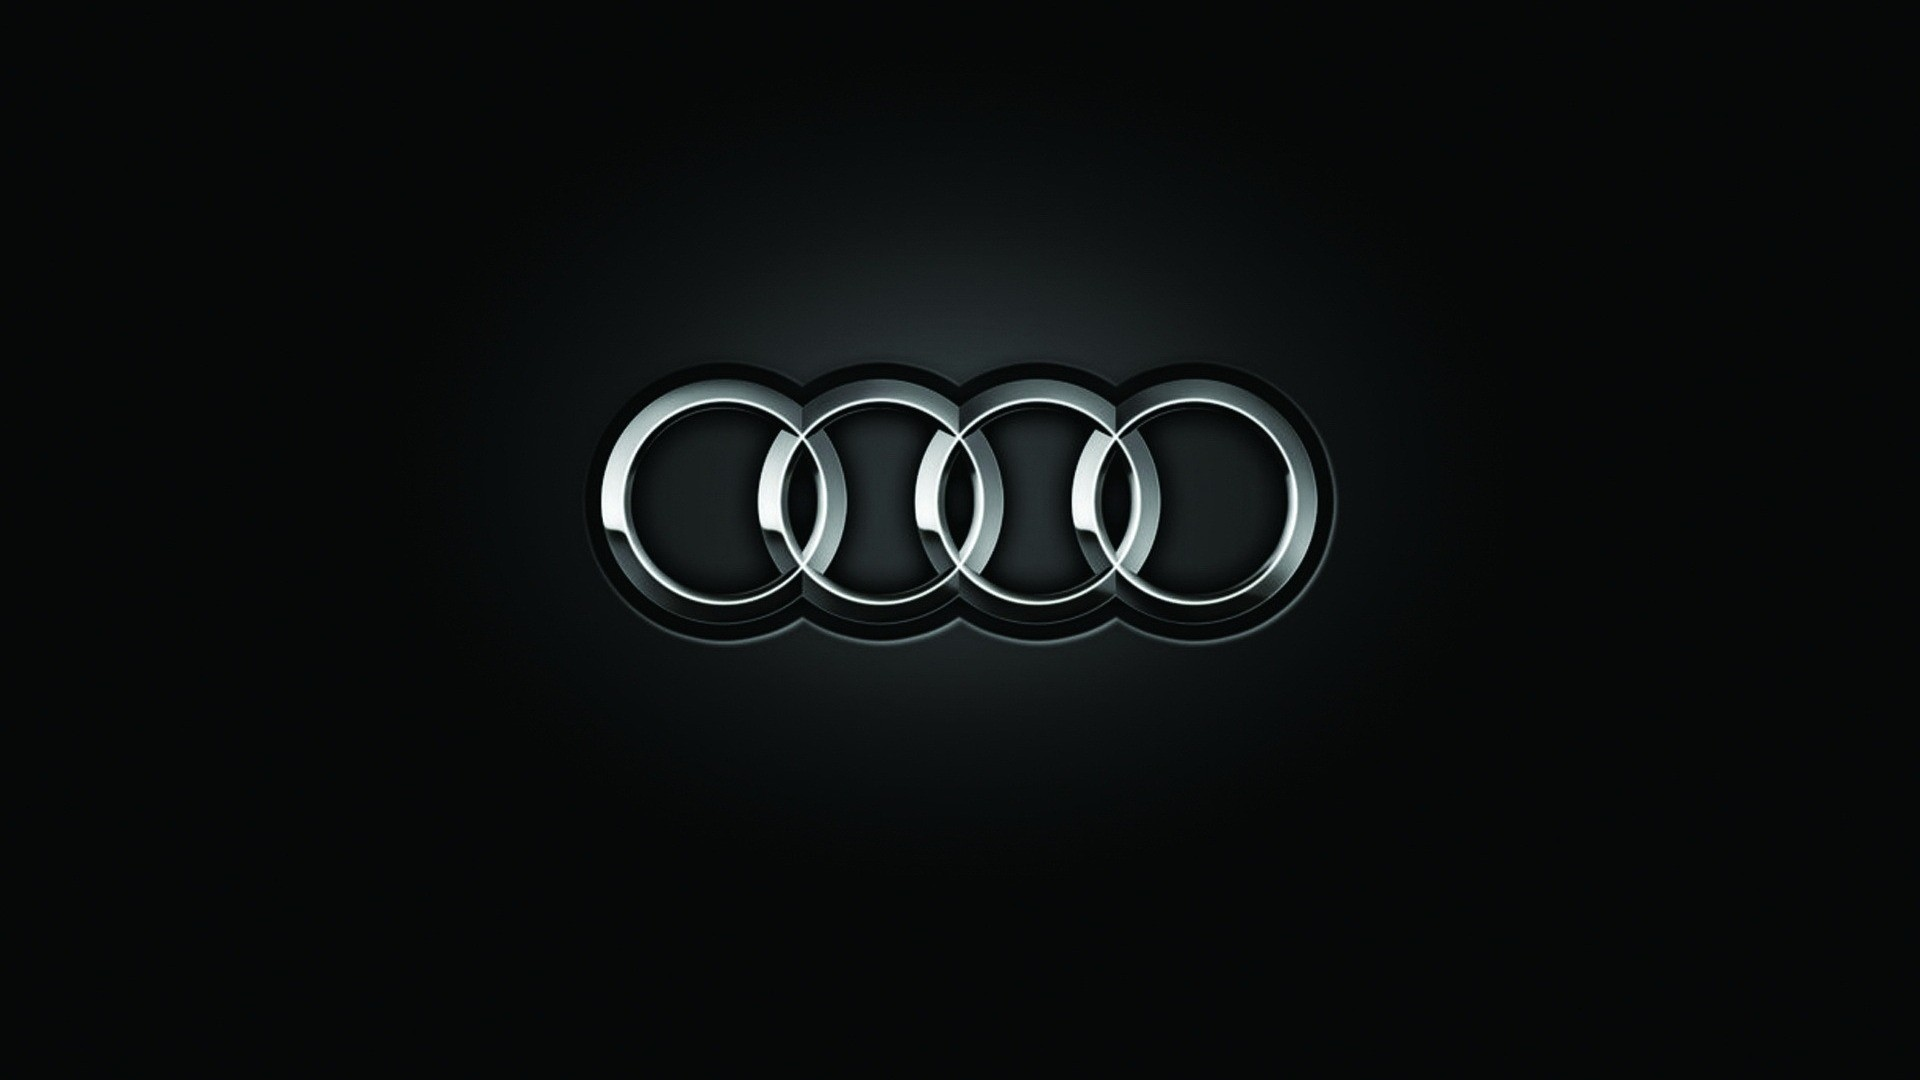 AUDI  HD Logo  4k Wallpapers  Images  Backgrounds  Photos and Pictures AUDI